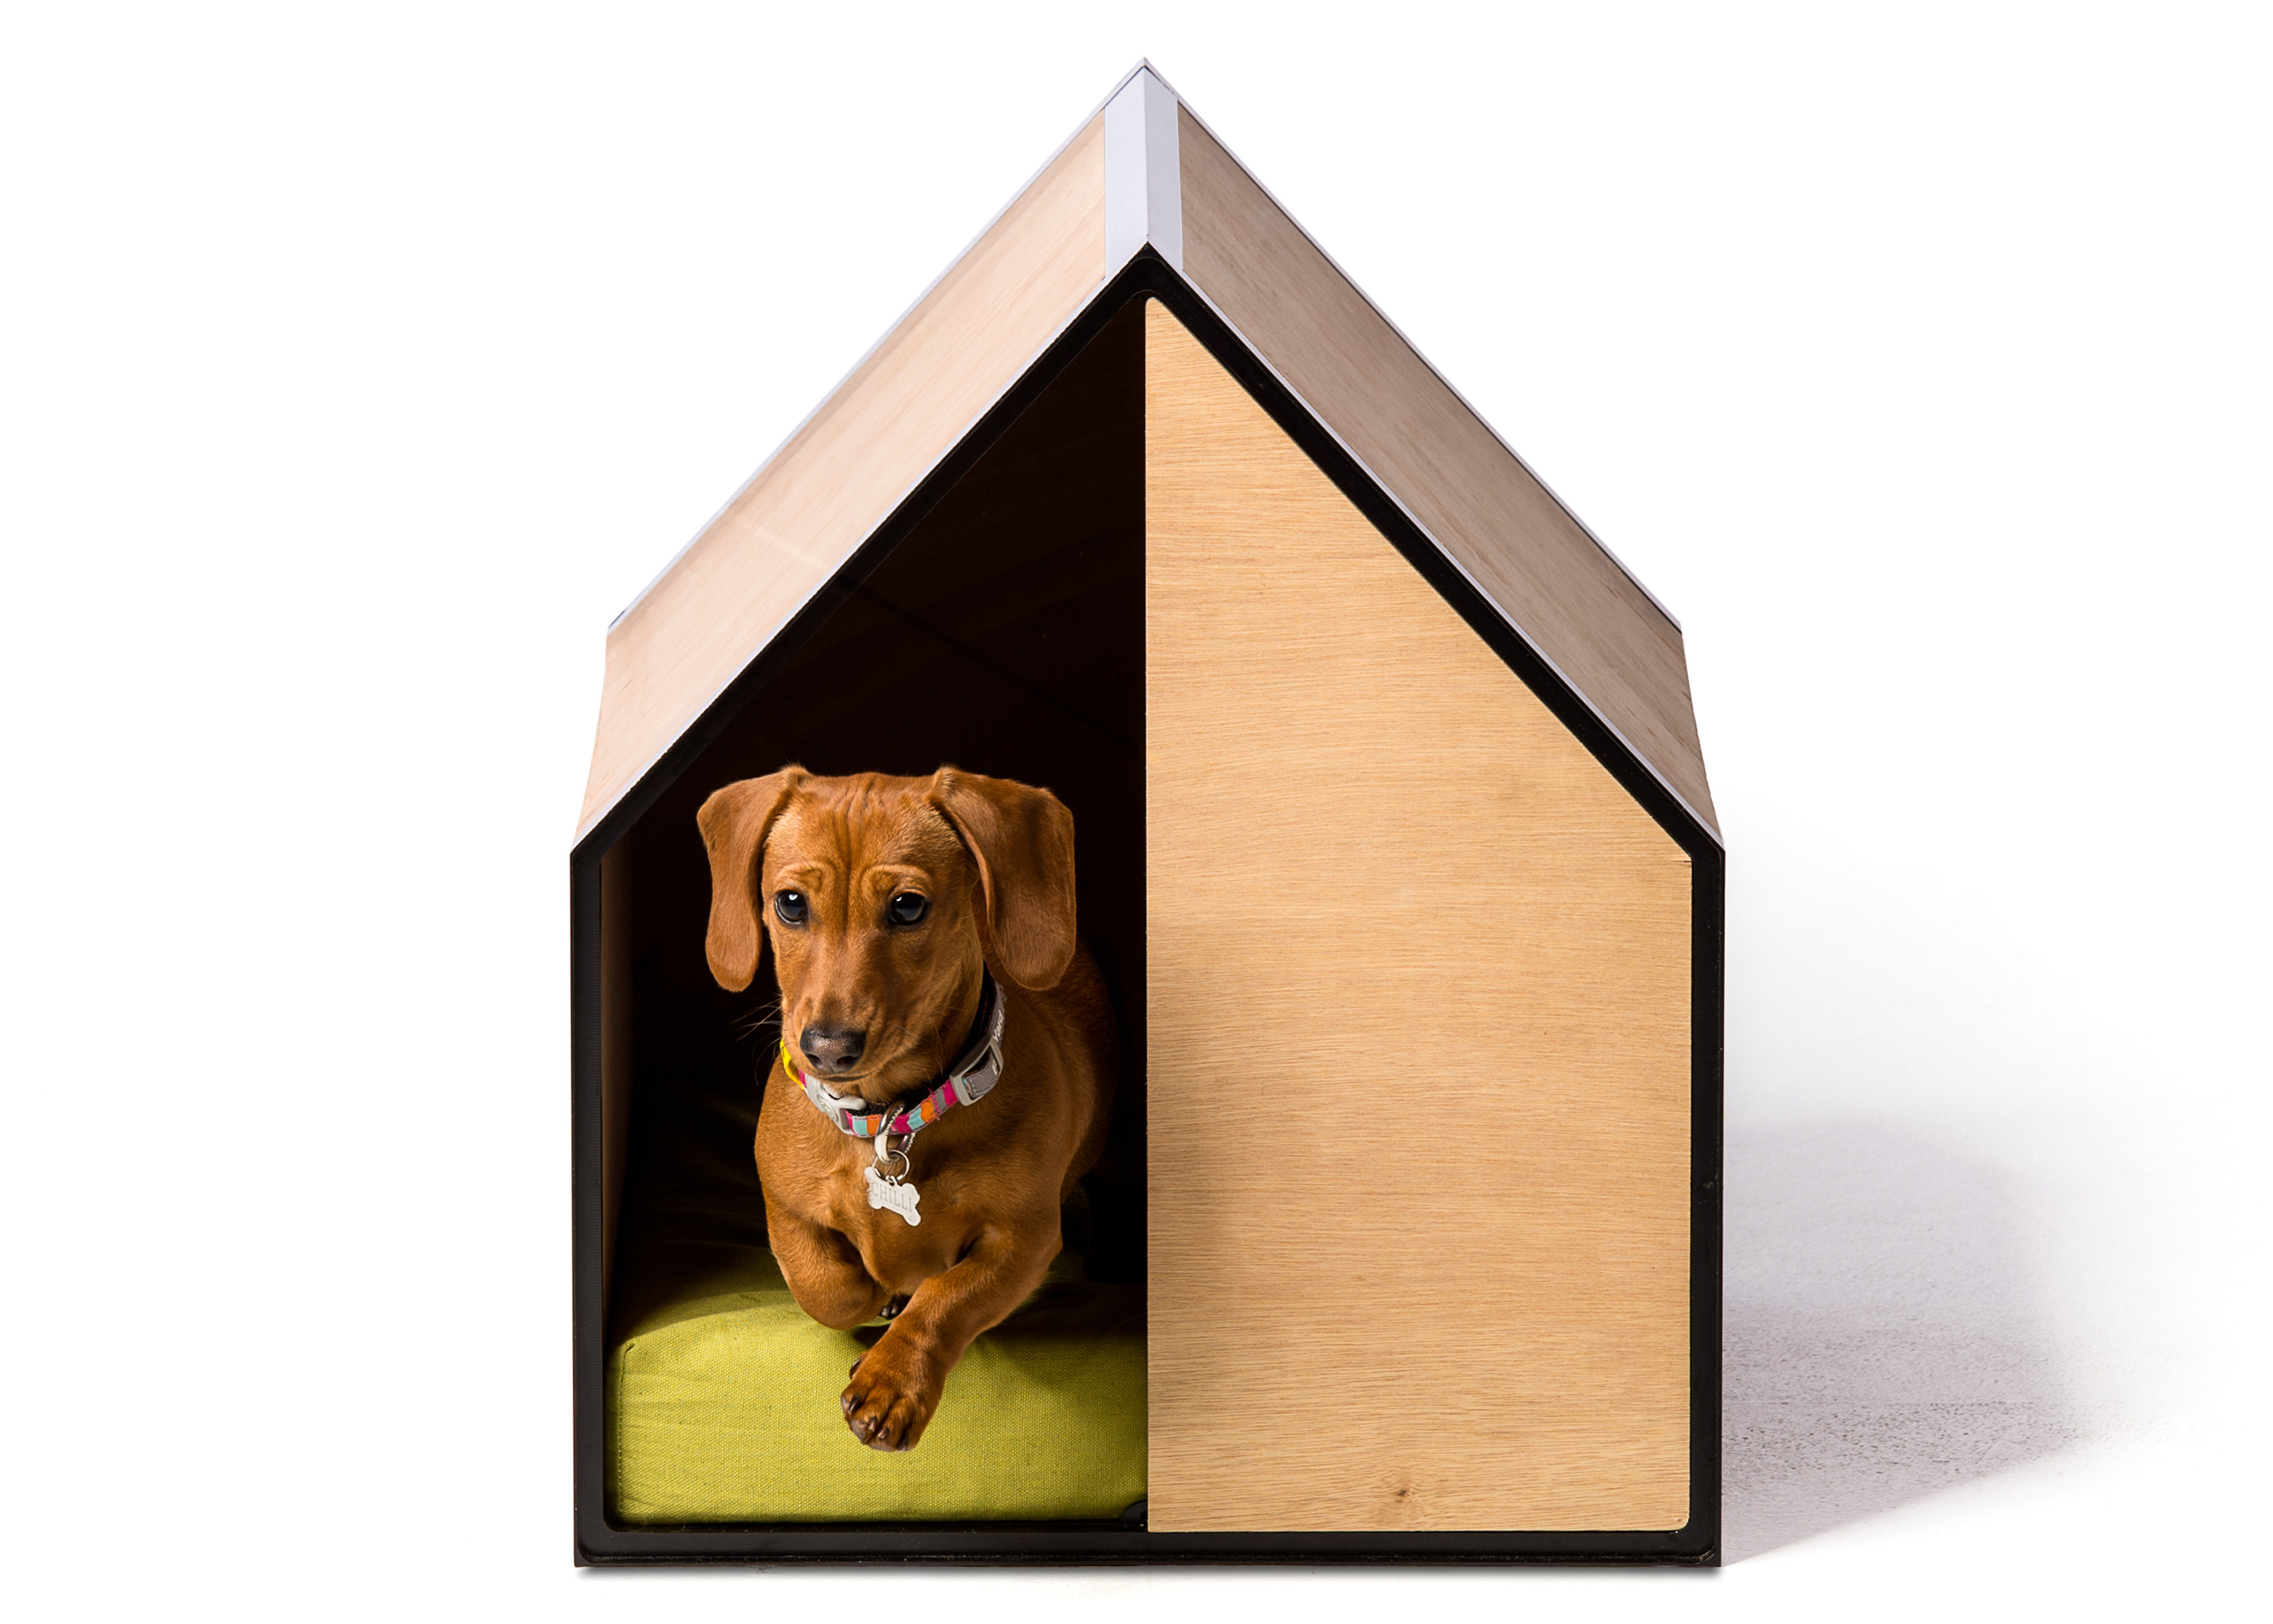 The Dog Room by Made by Pen